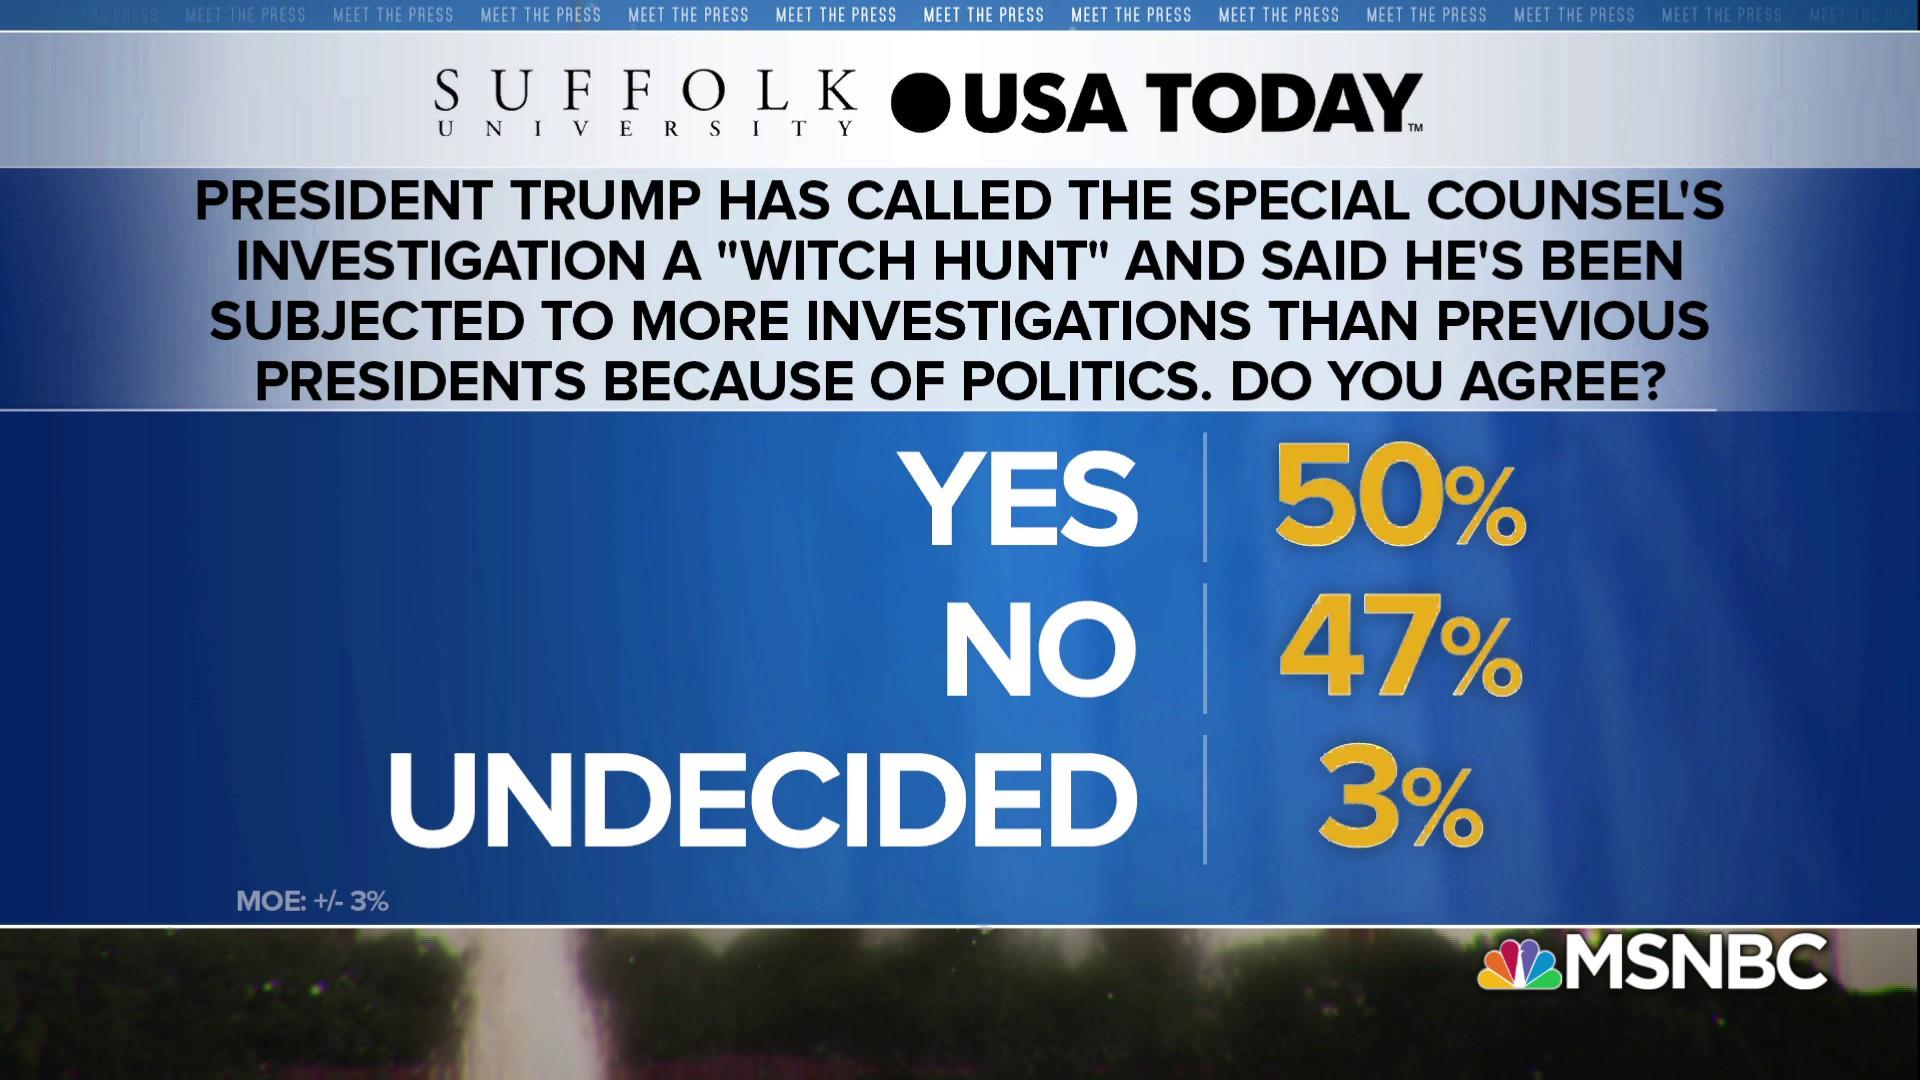 Trump cites flawed poll question support Mueller attacks